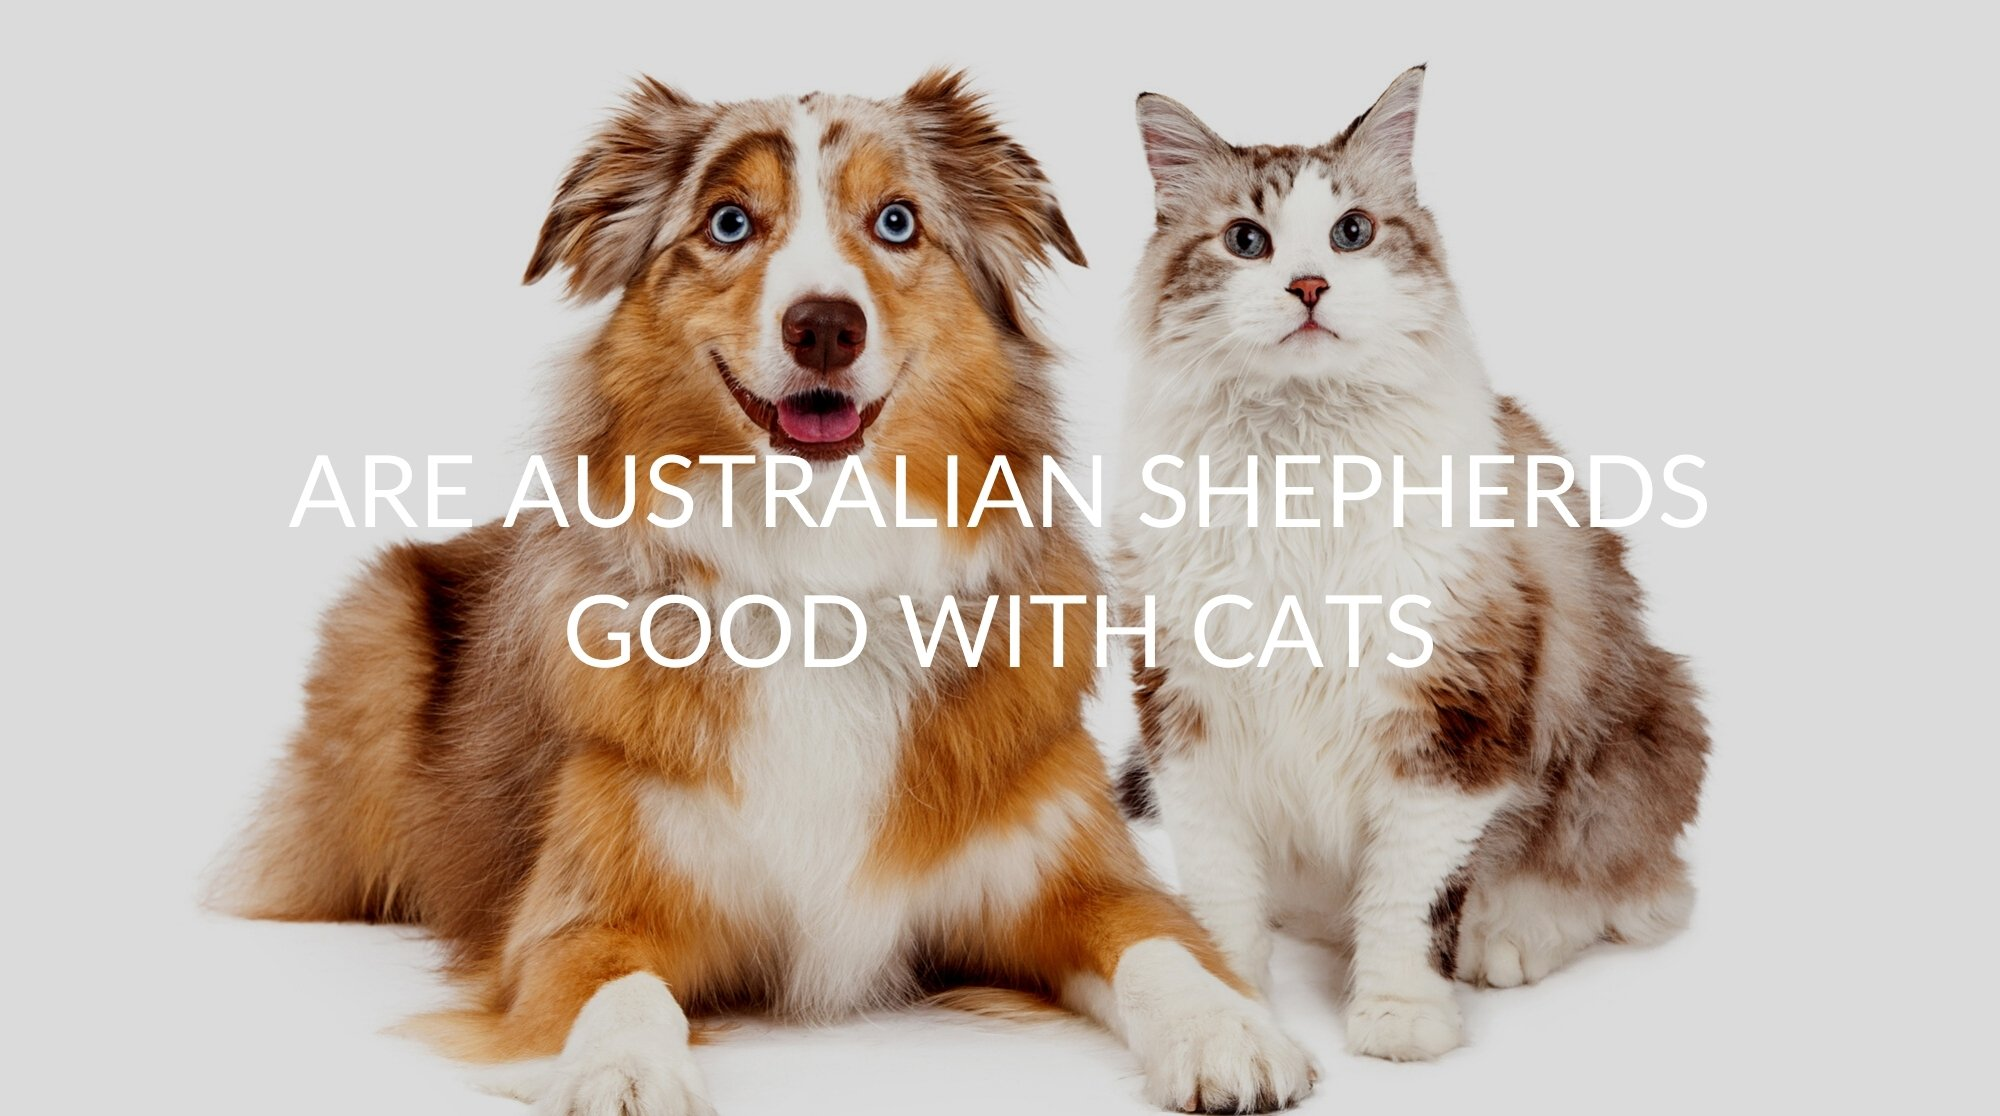 Are Australian Shepherds Good With Cats